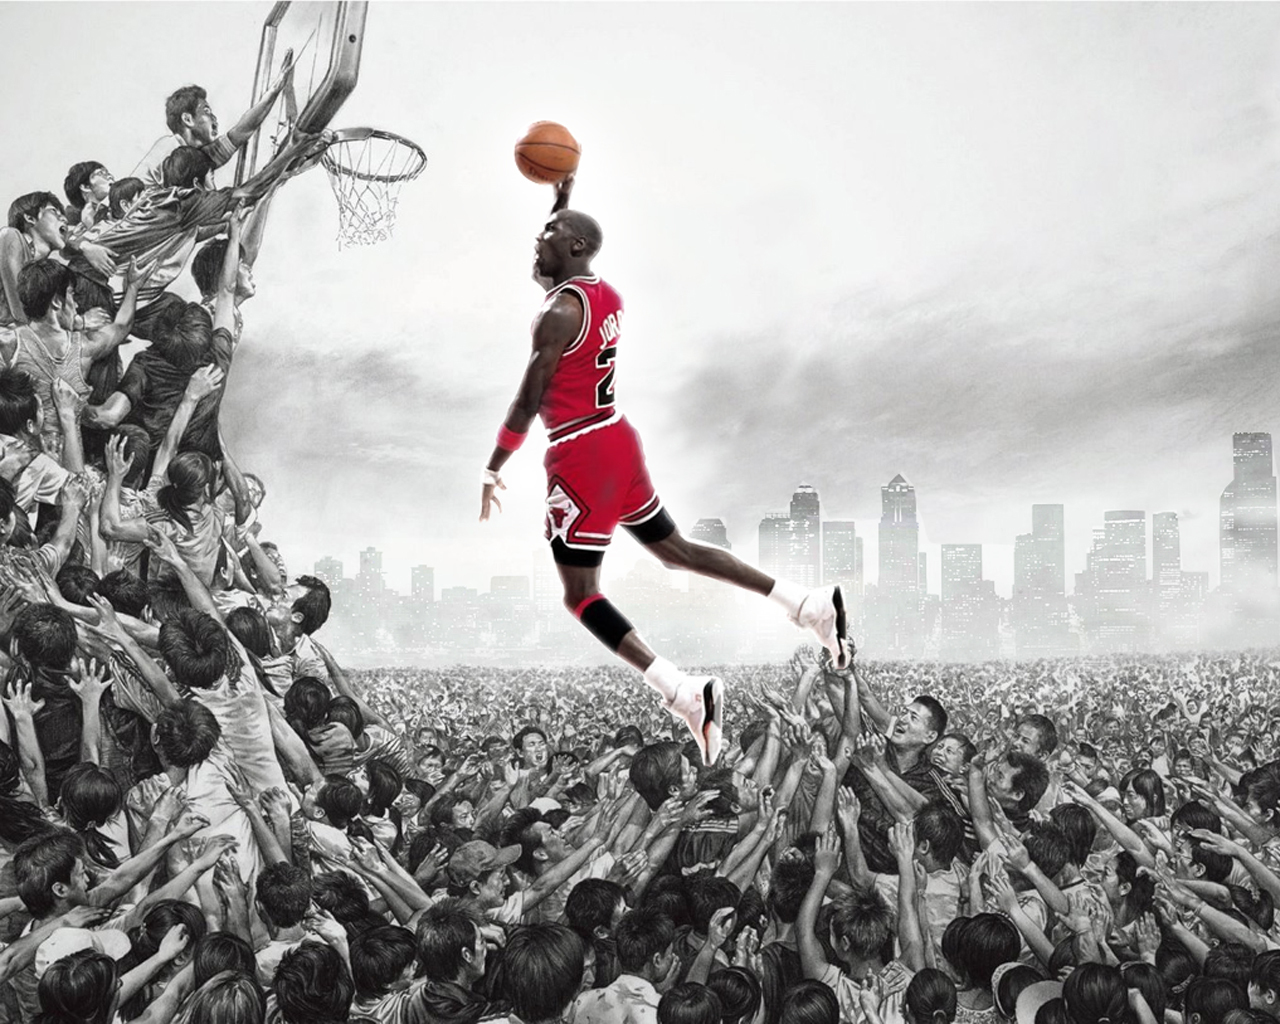 Michael Jordan hd Wallpaper 2011 | All About Sports Stars